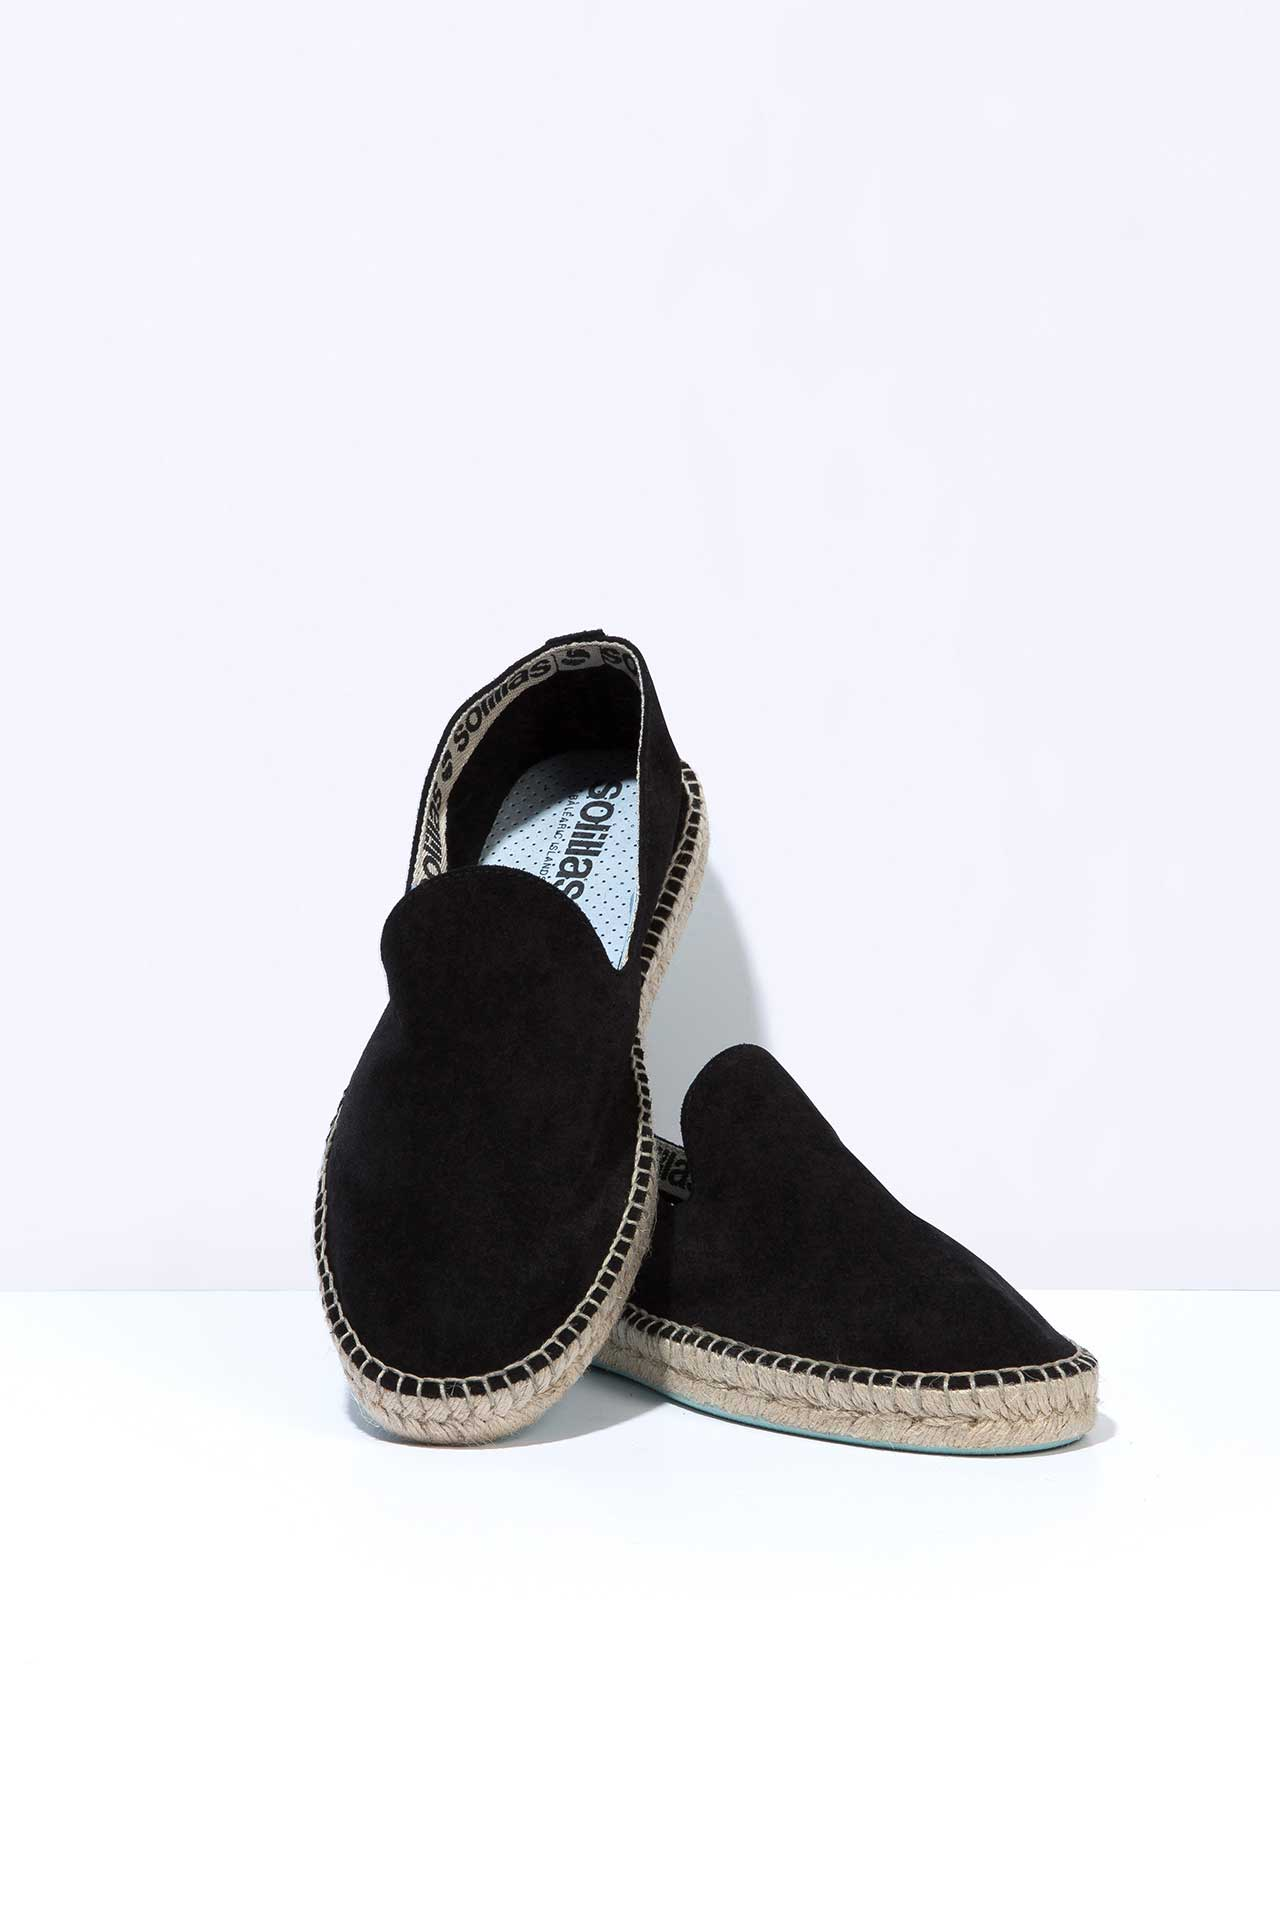 Lluis Black - Suede Leather Espadrilles